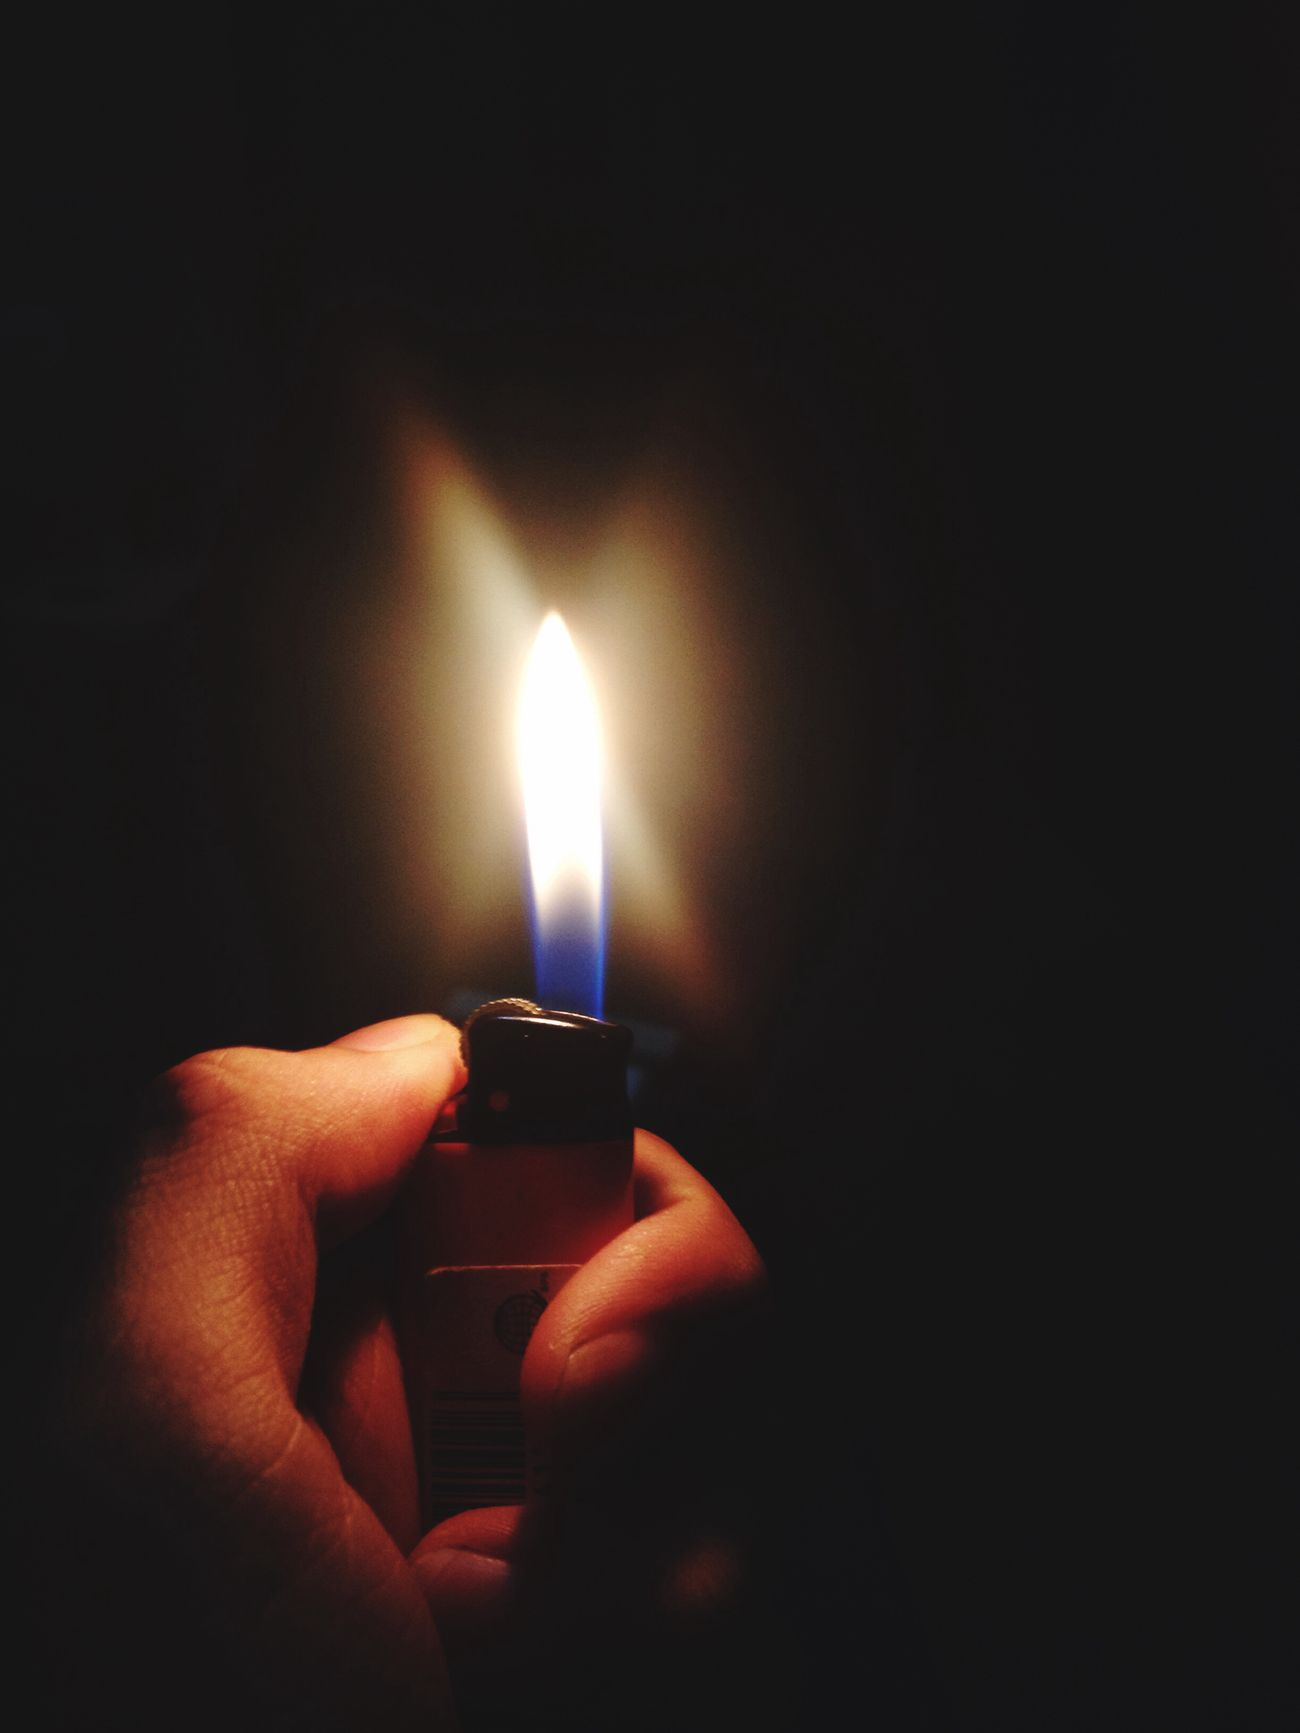 Art Is Everywhere Flame Burning Human Hand Glowing Cigarette Lighter Close-up First Eyeem Photo FirstEyeEmPic